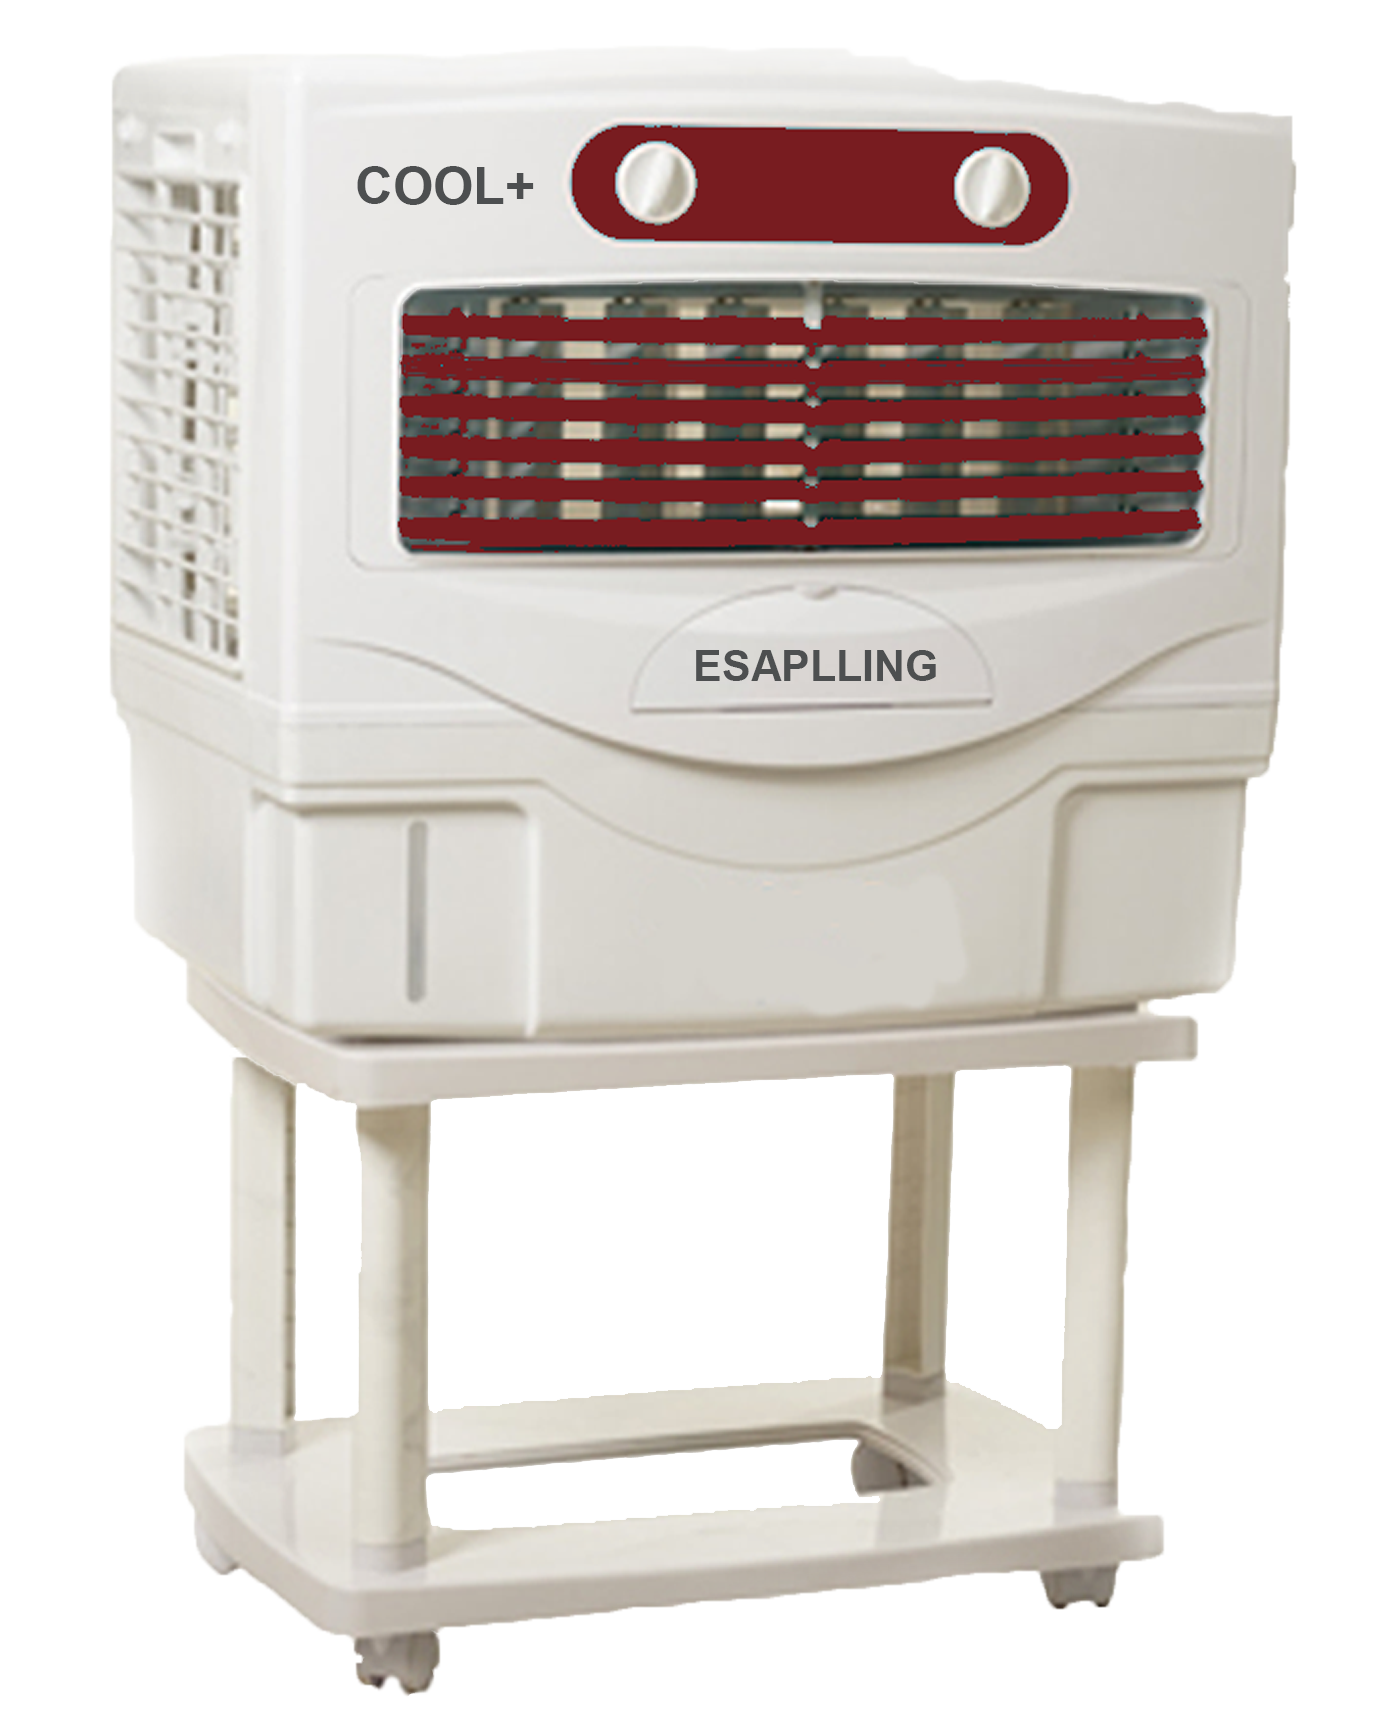 Image of Cool plus cooler